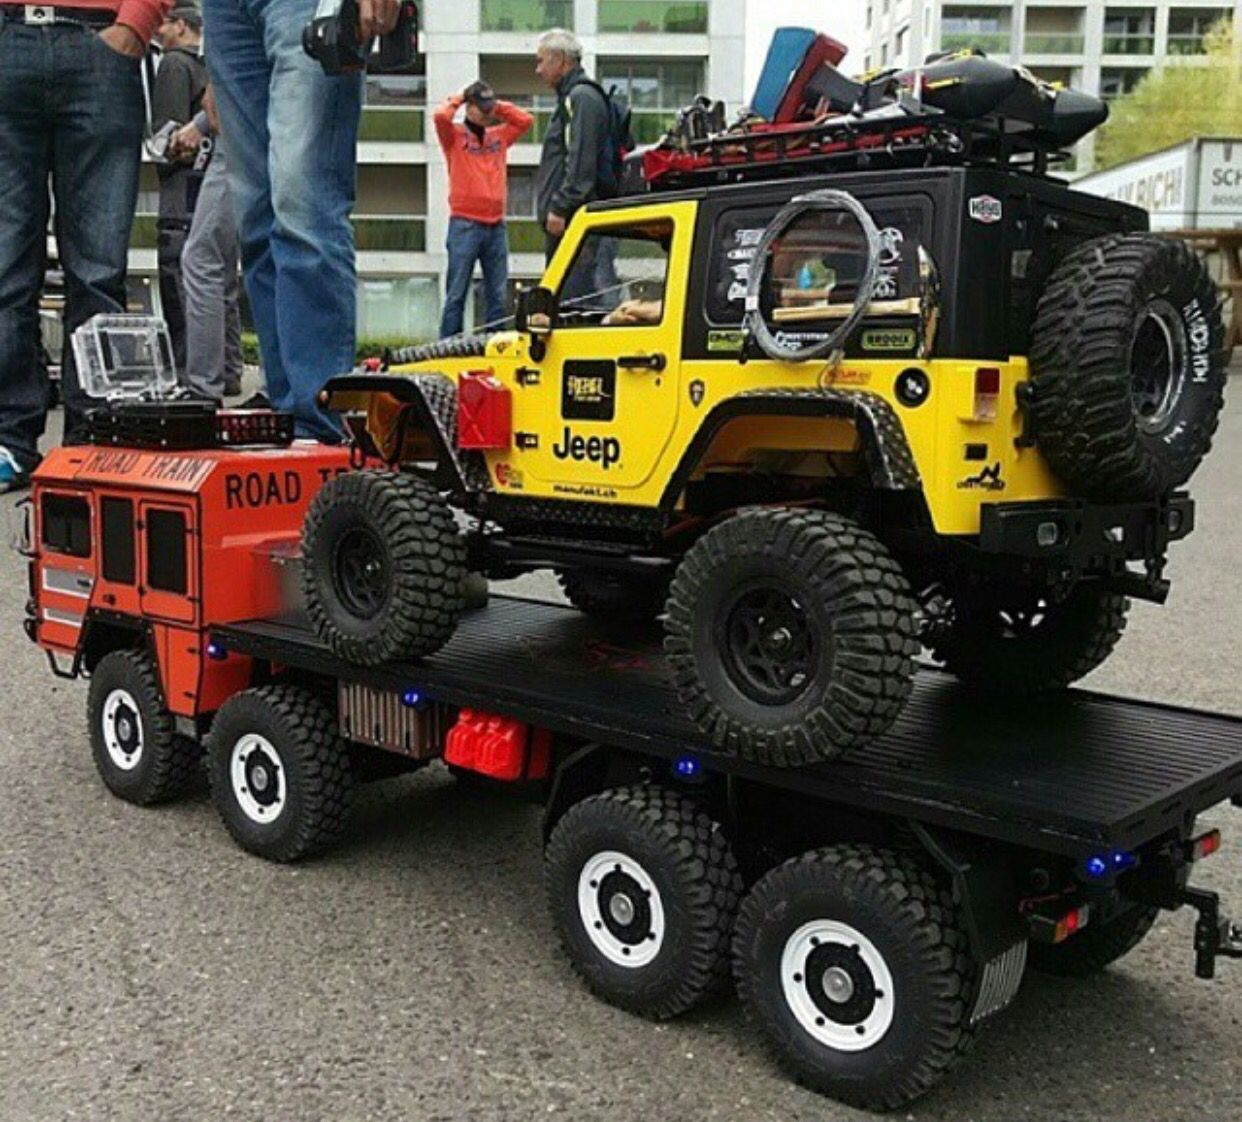 Should you really like remote control cars you will really